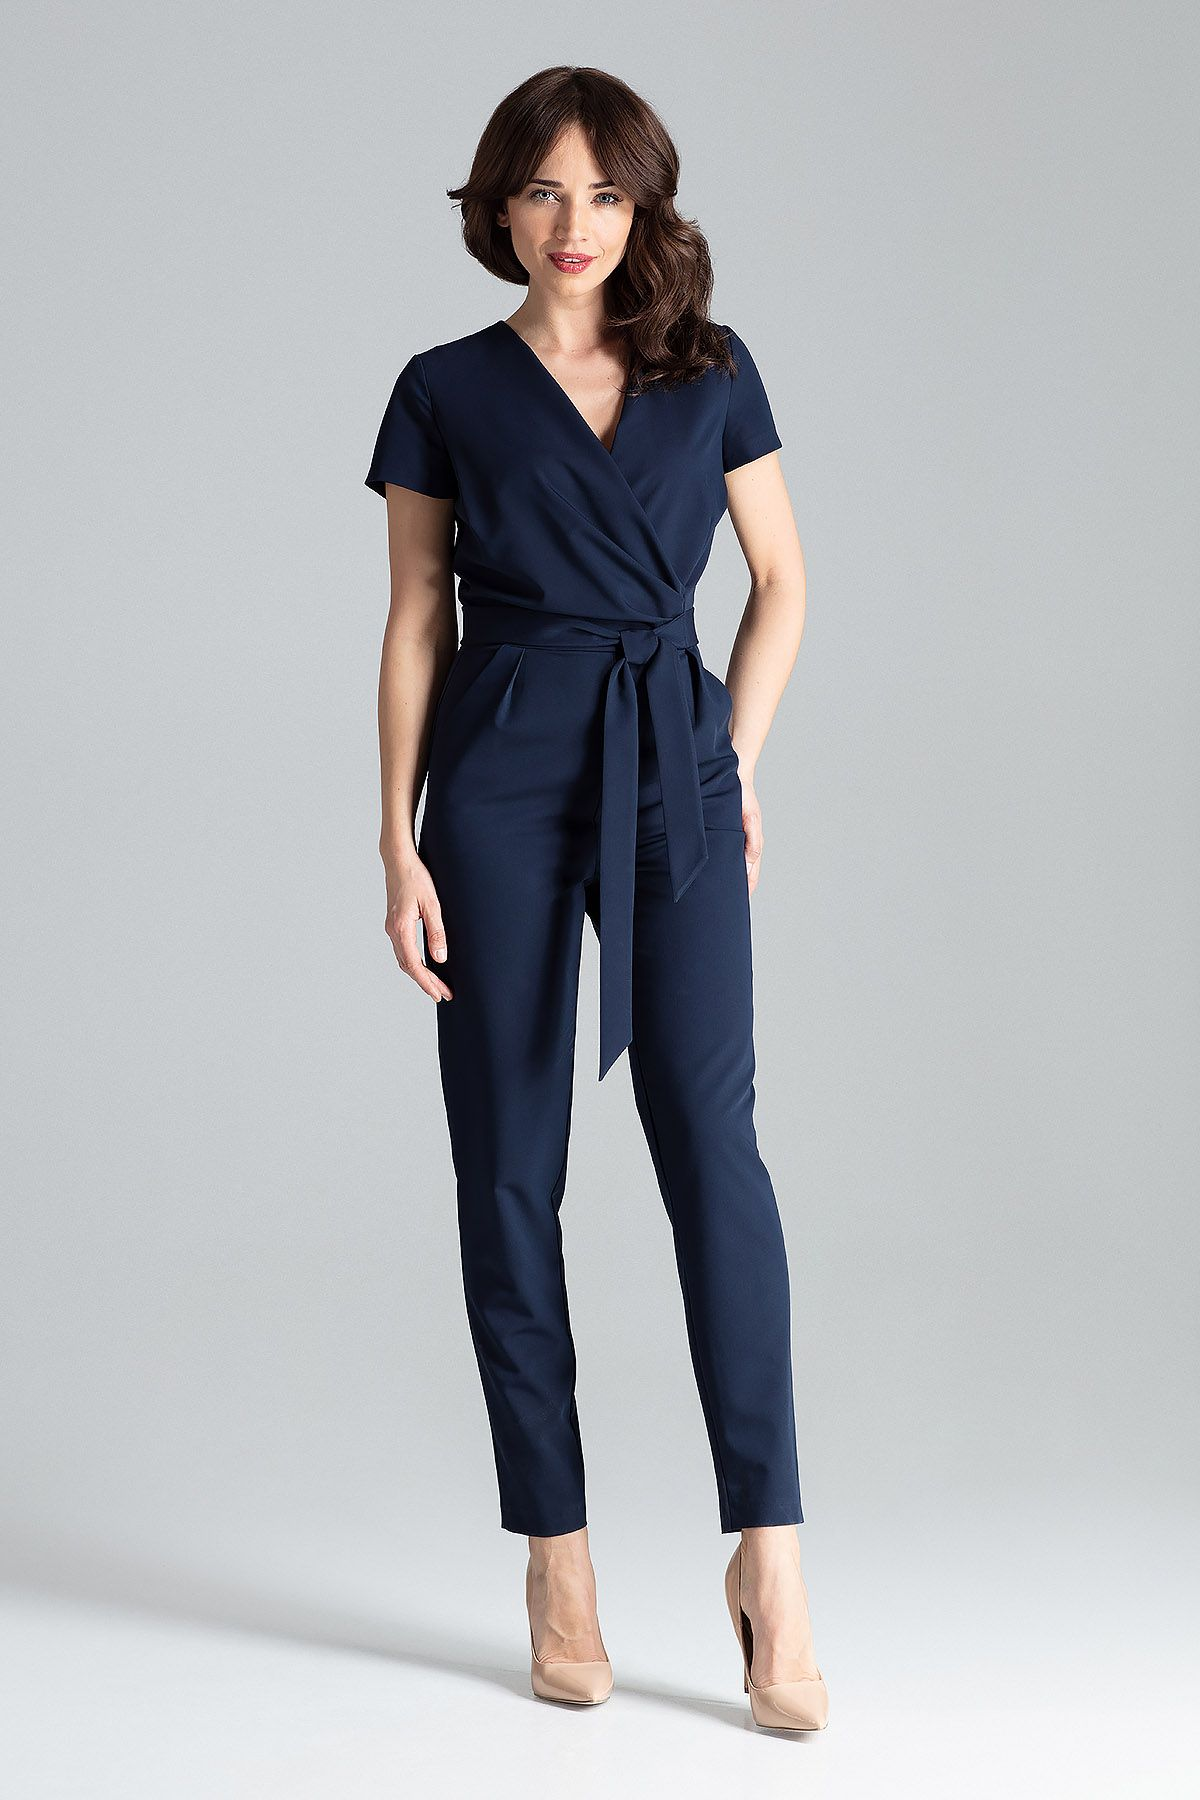 Short-sleeved Jumpsuit With Long Legs